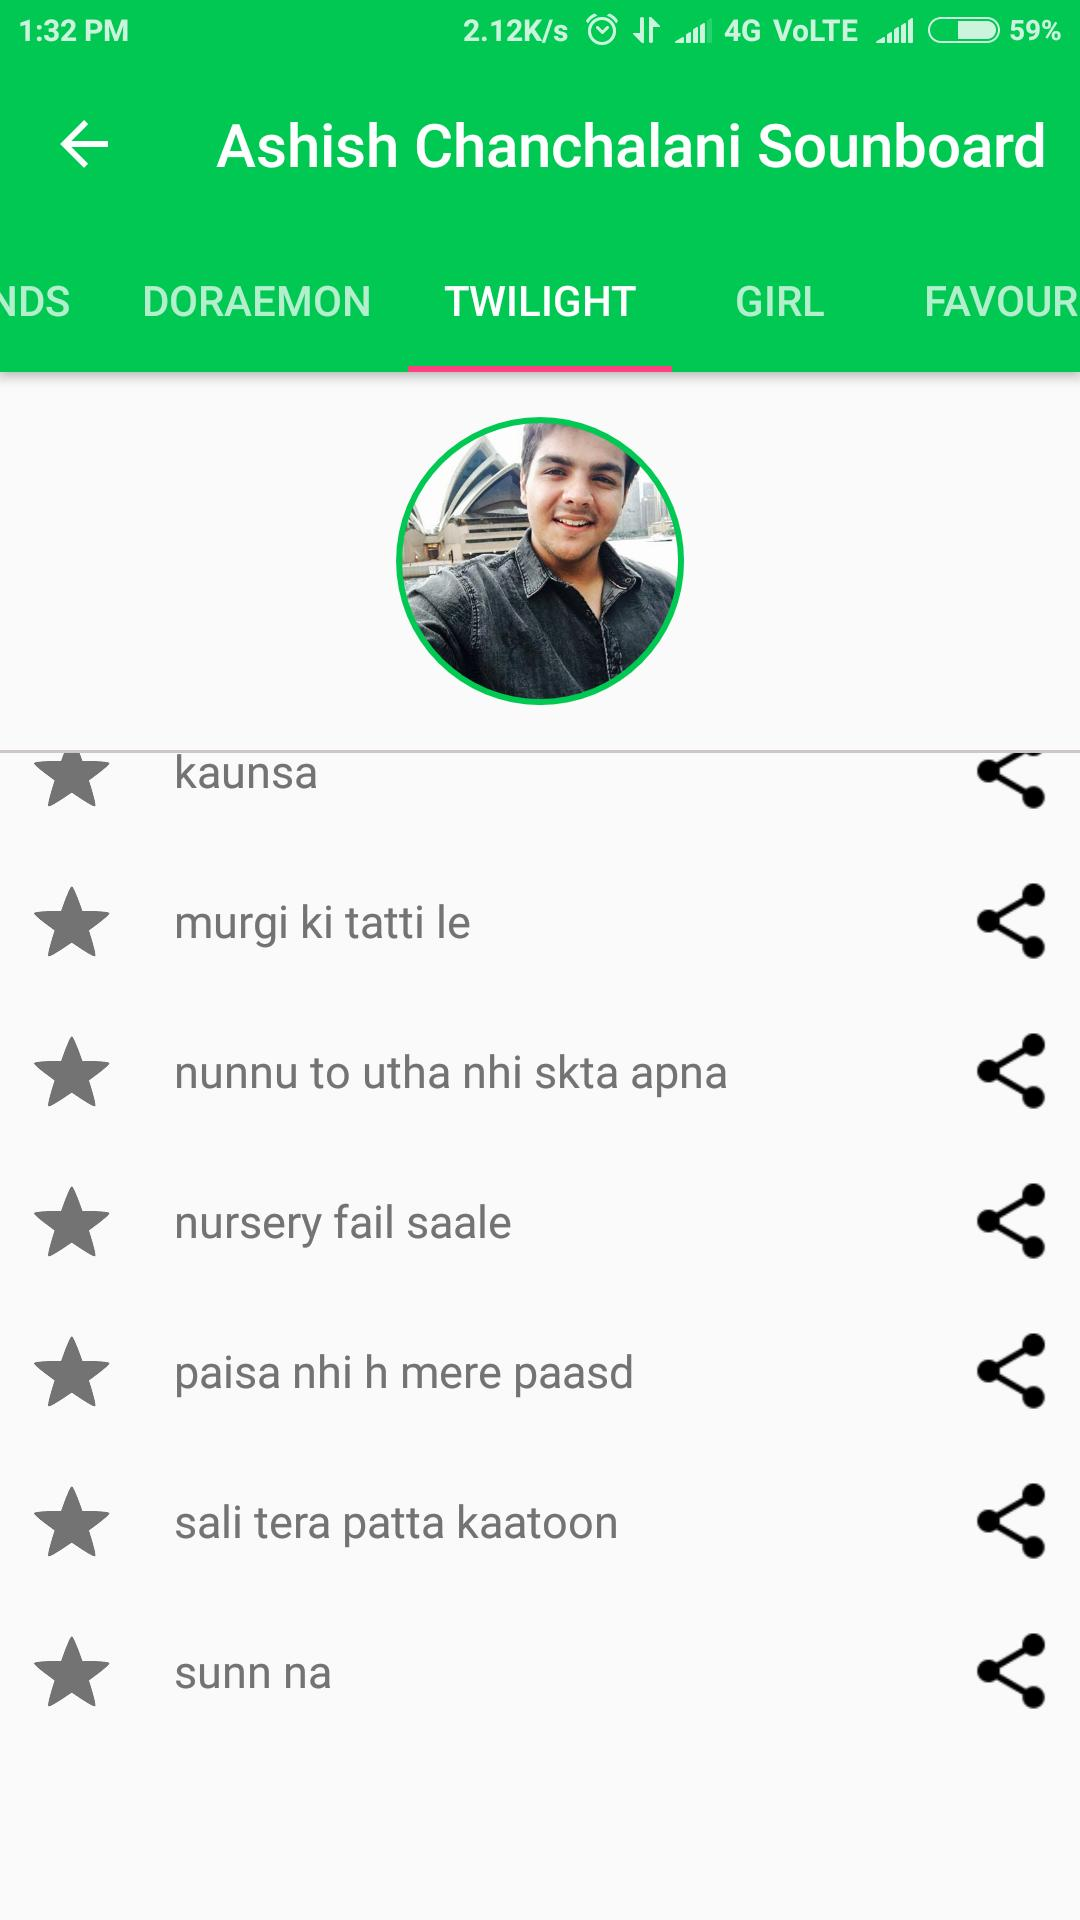 Ashish Chanchlani Vines Soundboard for Android - APK Download